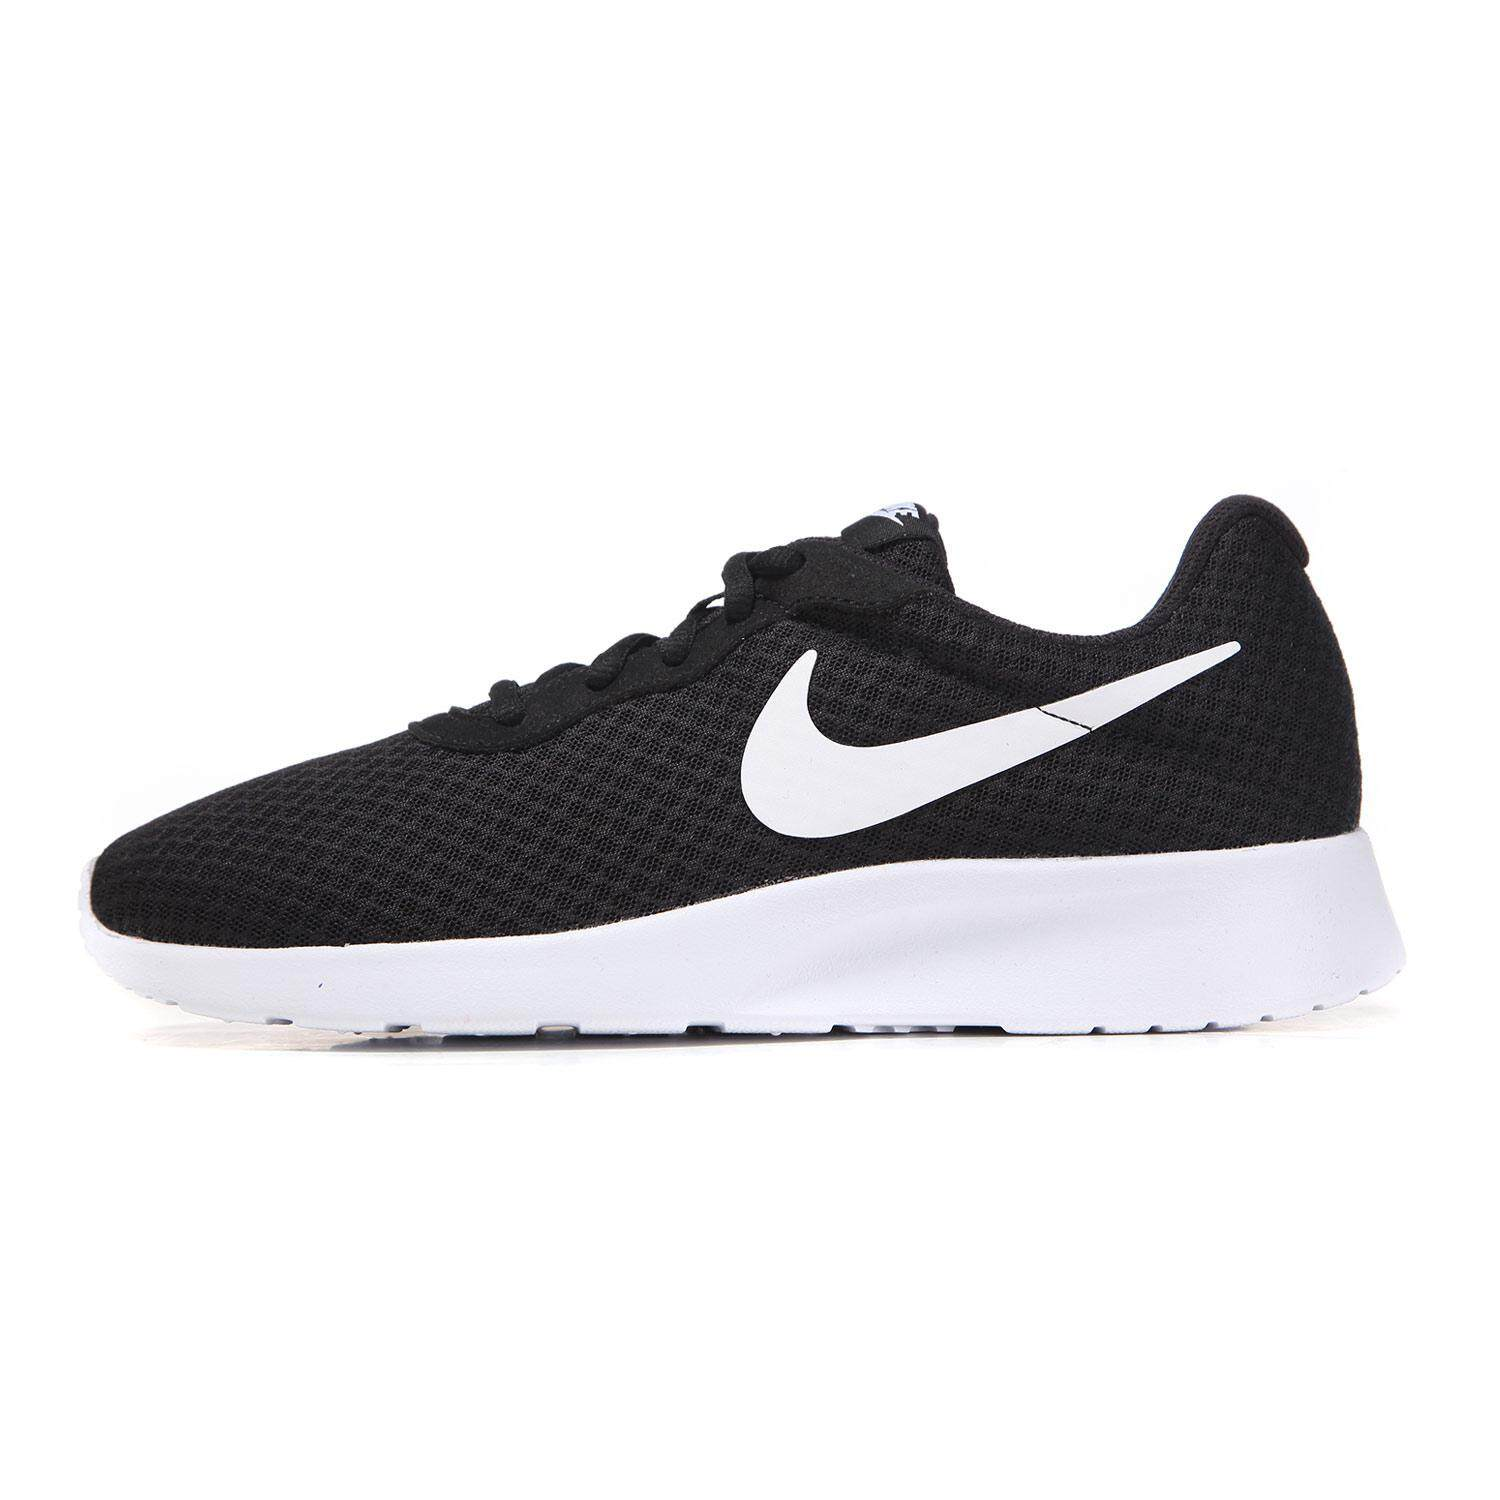 new styles 4e5ff dc3bc NIKE TANJUN men s shoes women s shoes sports casual light mesh running  shoes 812654-010 812654